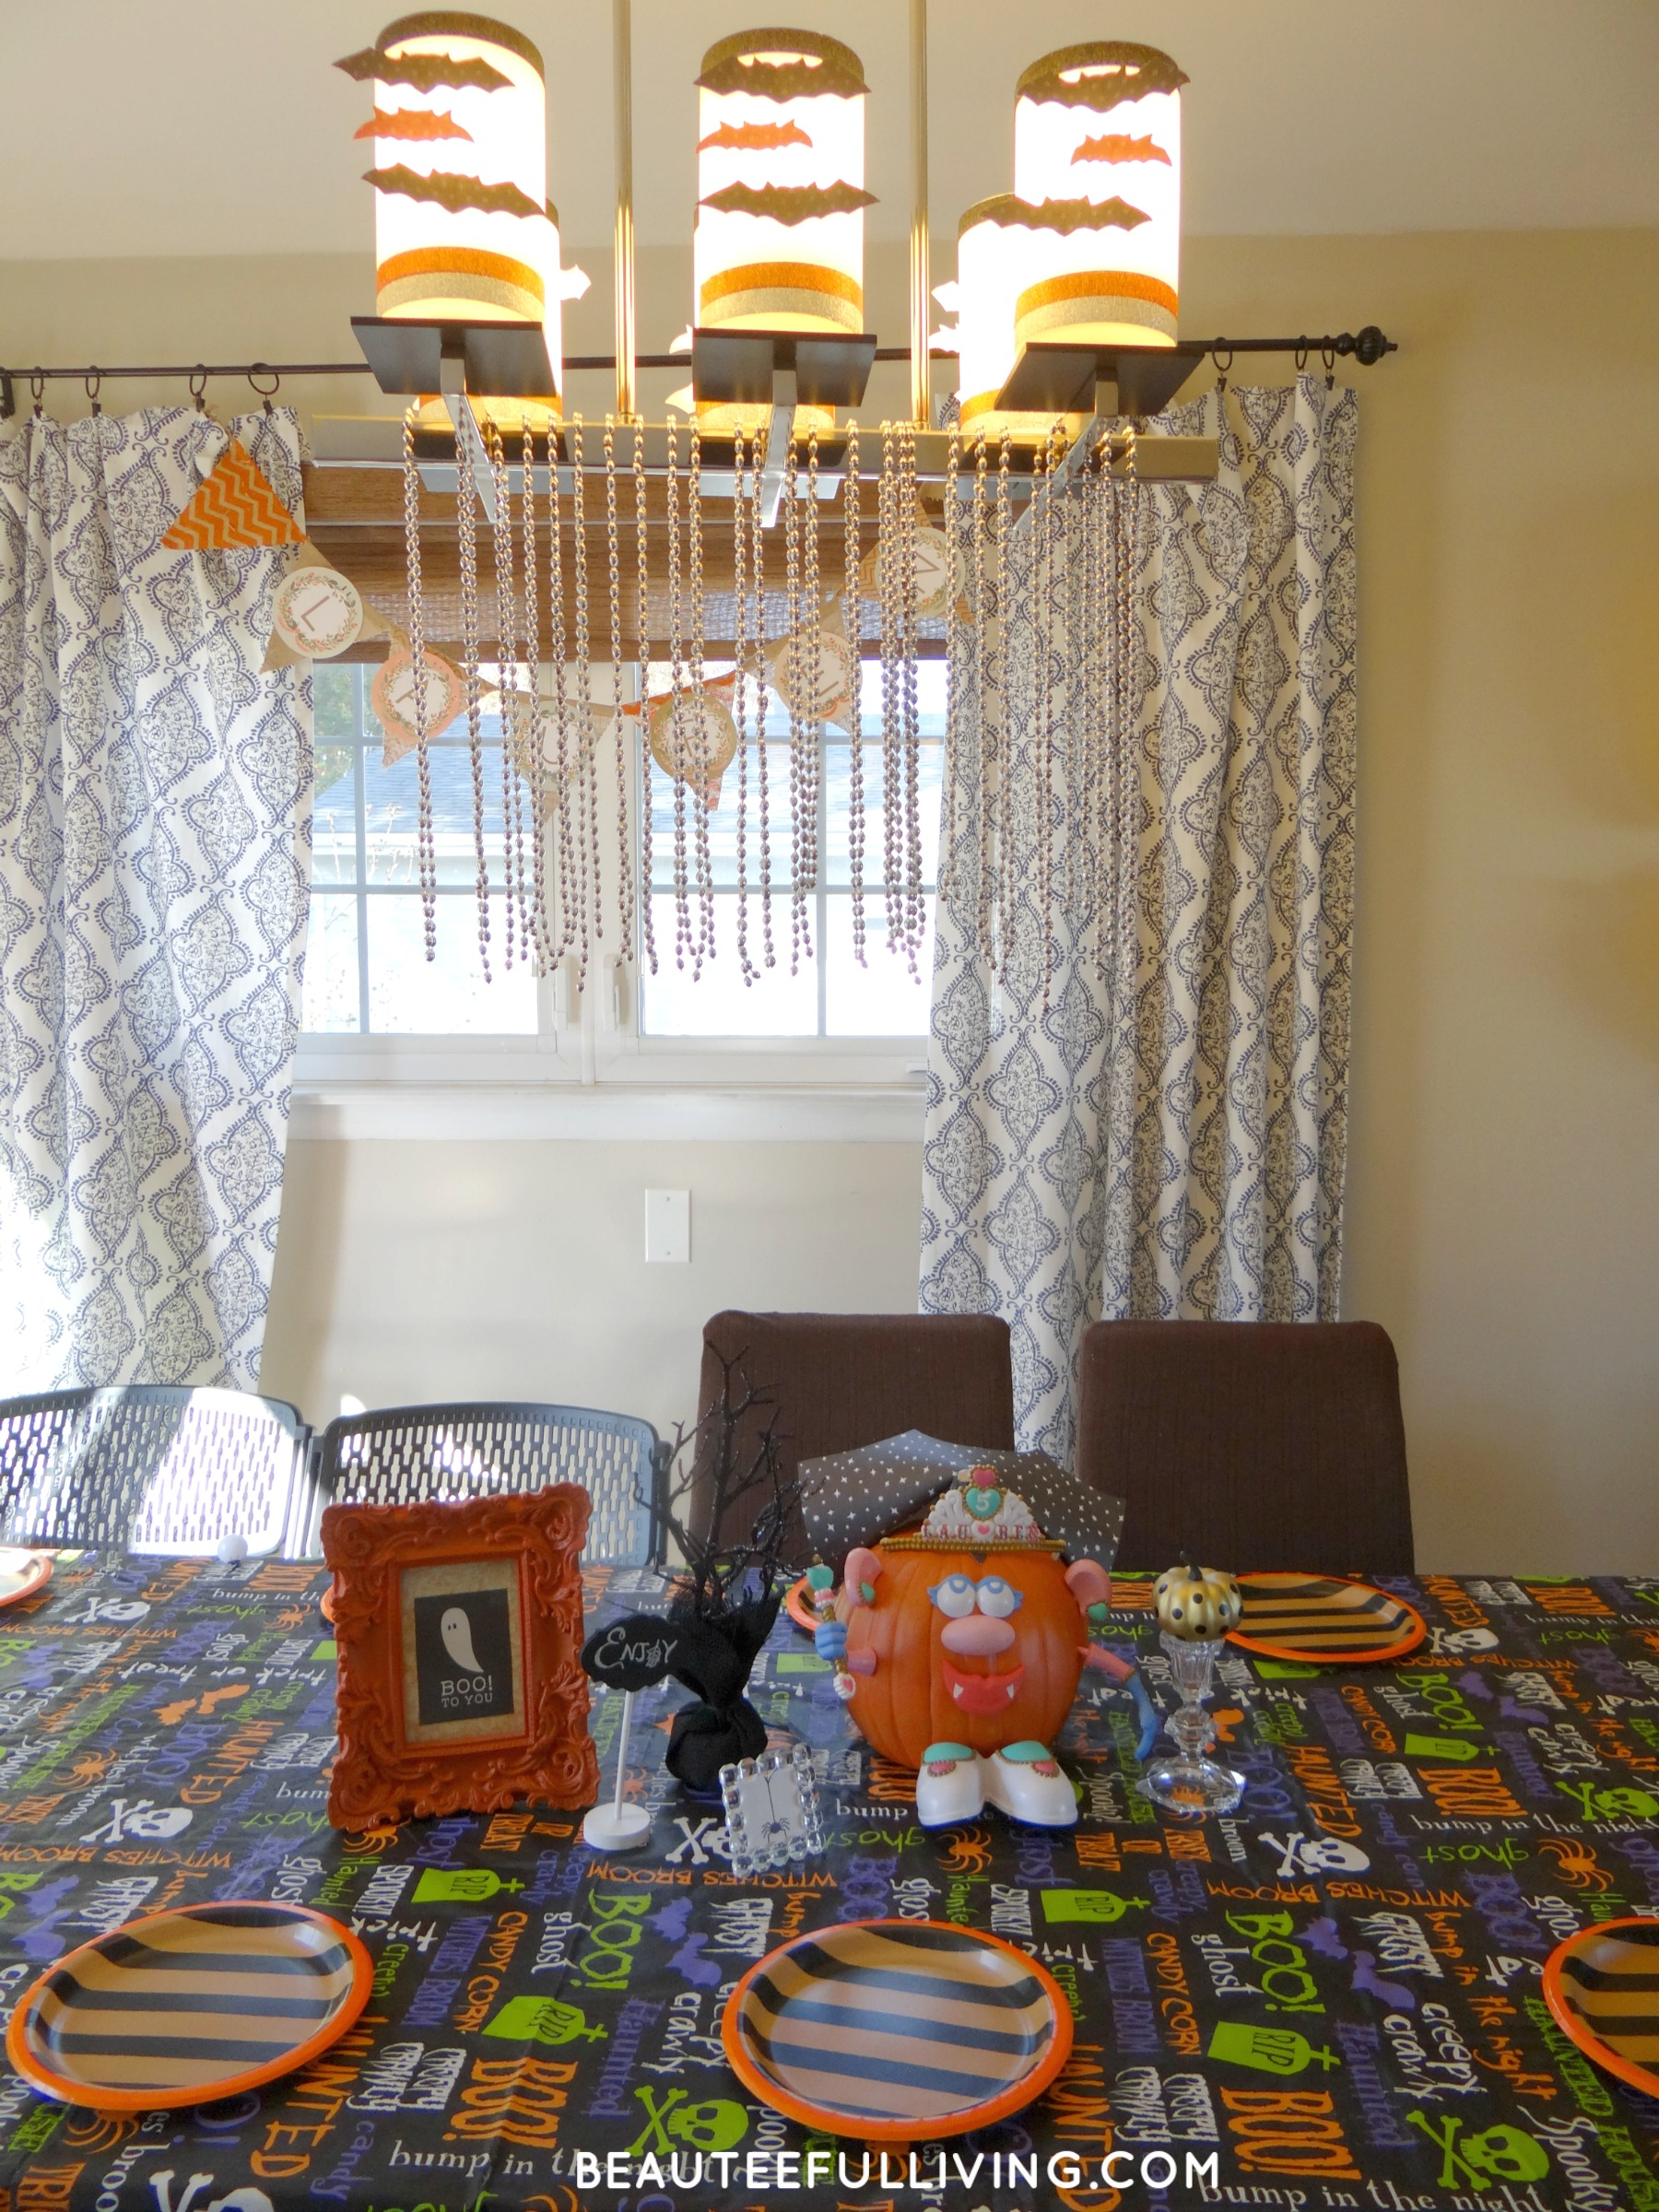 Throwing a Spooktacular Halloween Birthday Party - BEAUTEEFUL Living